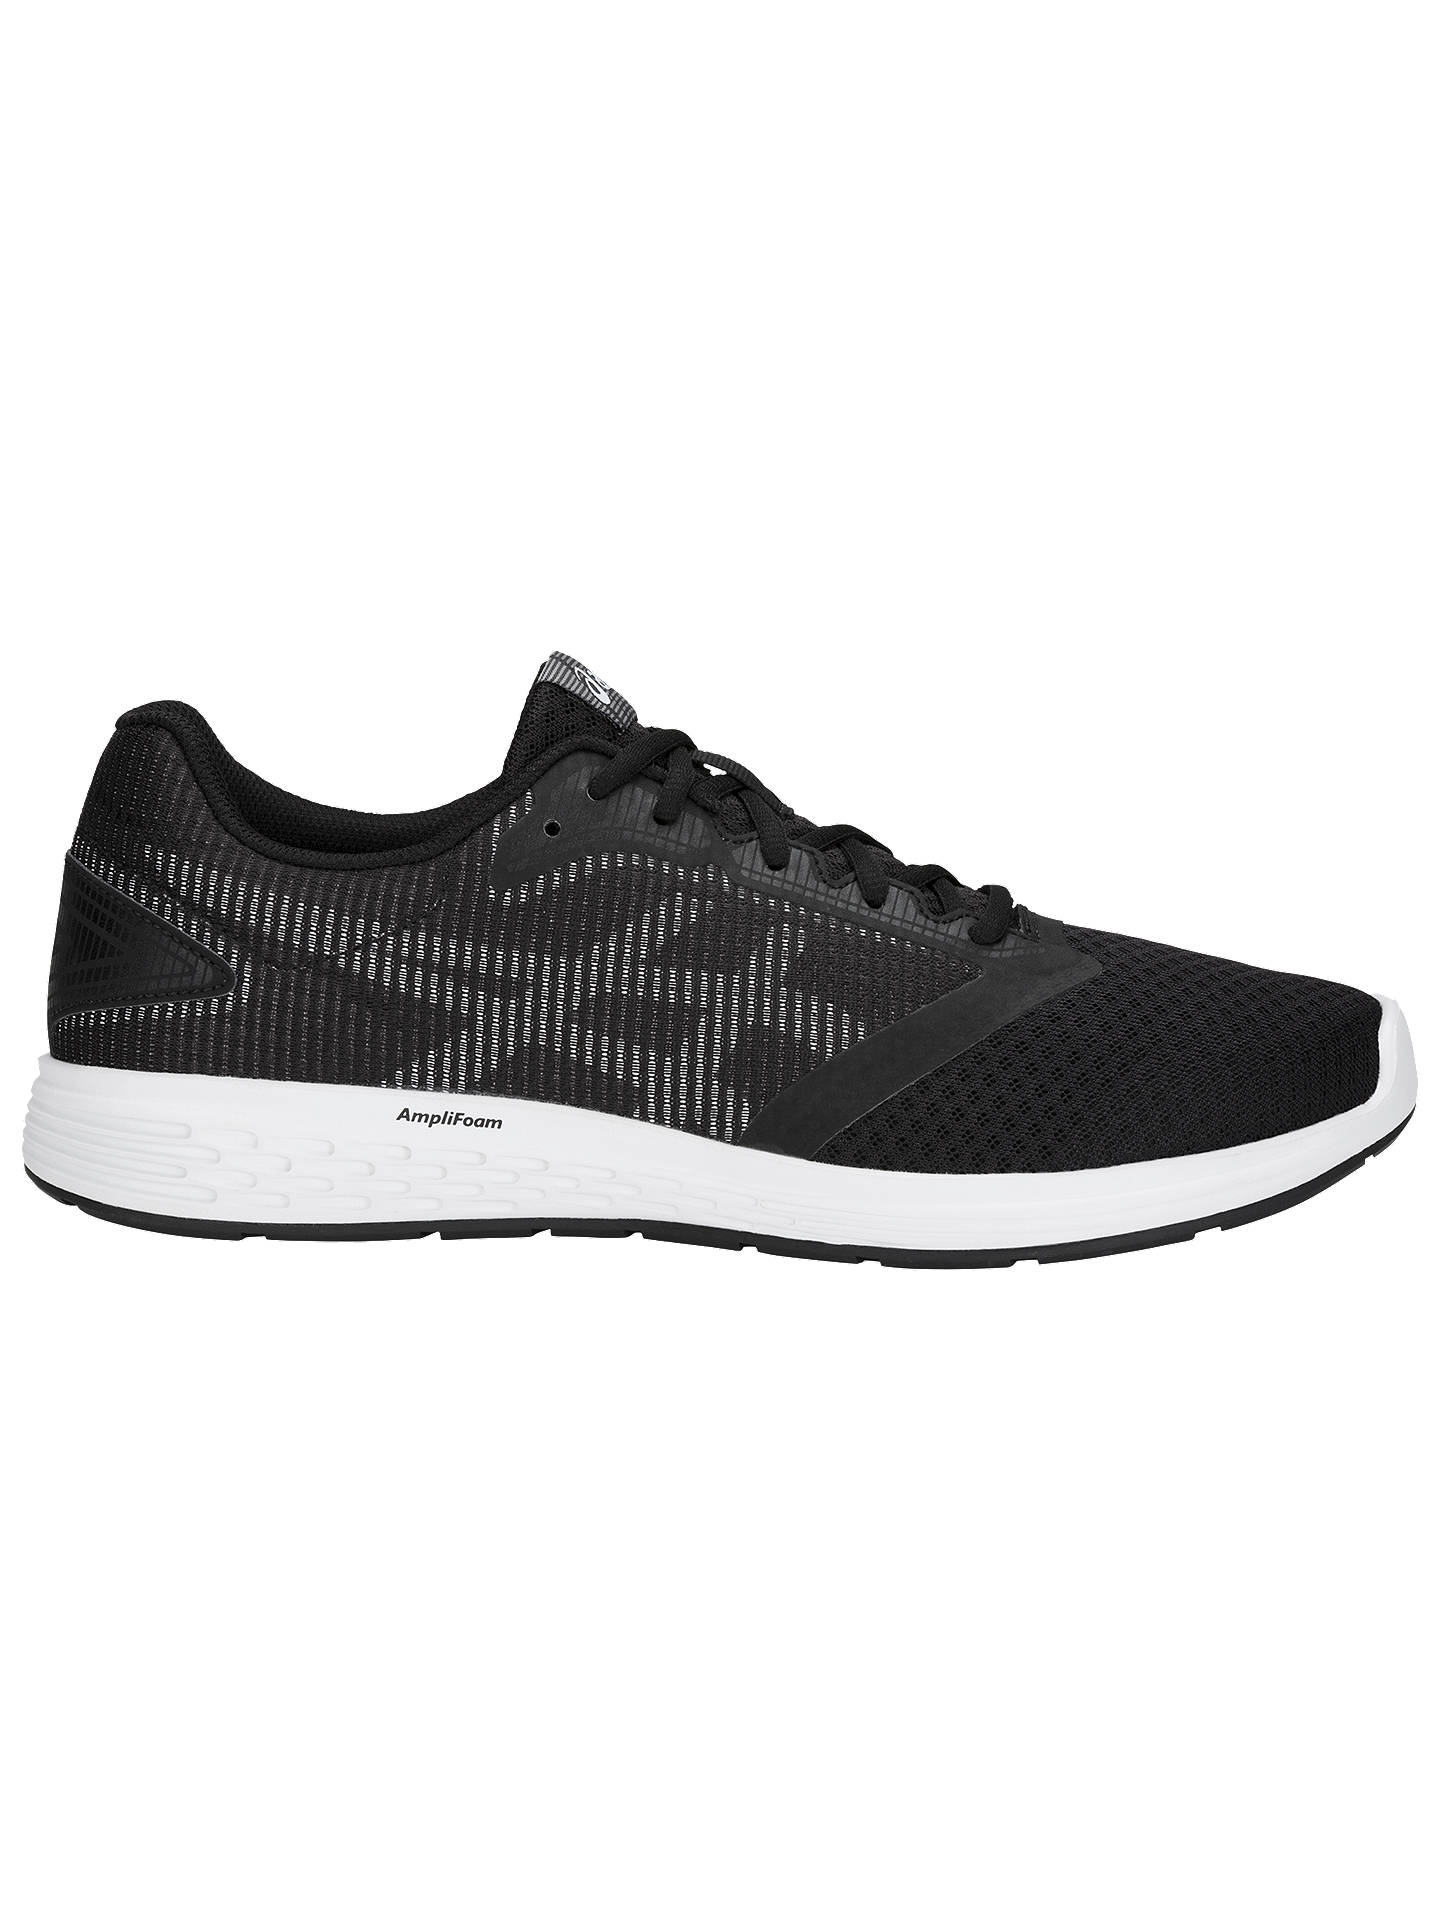 premium selection 61817 884f8 Buy ASICS PATRIOT 10 Men s Running Shoes, Black White, 7 Online at  johnlewis ...